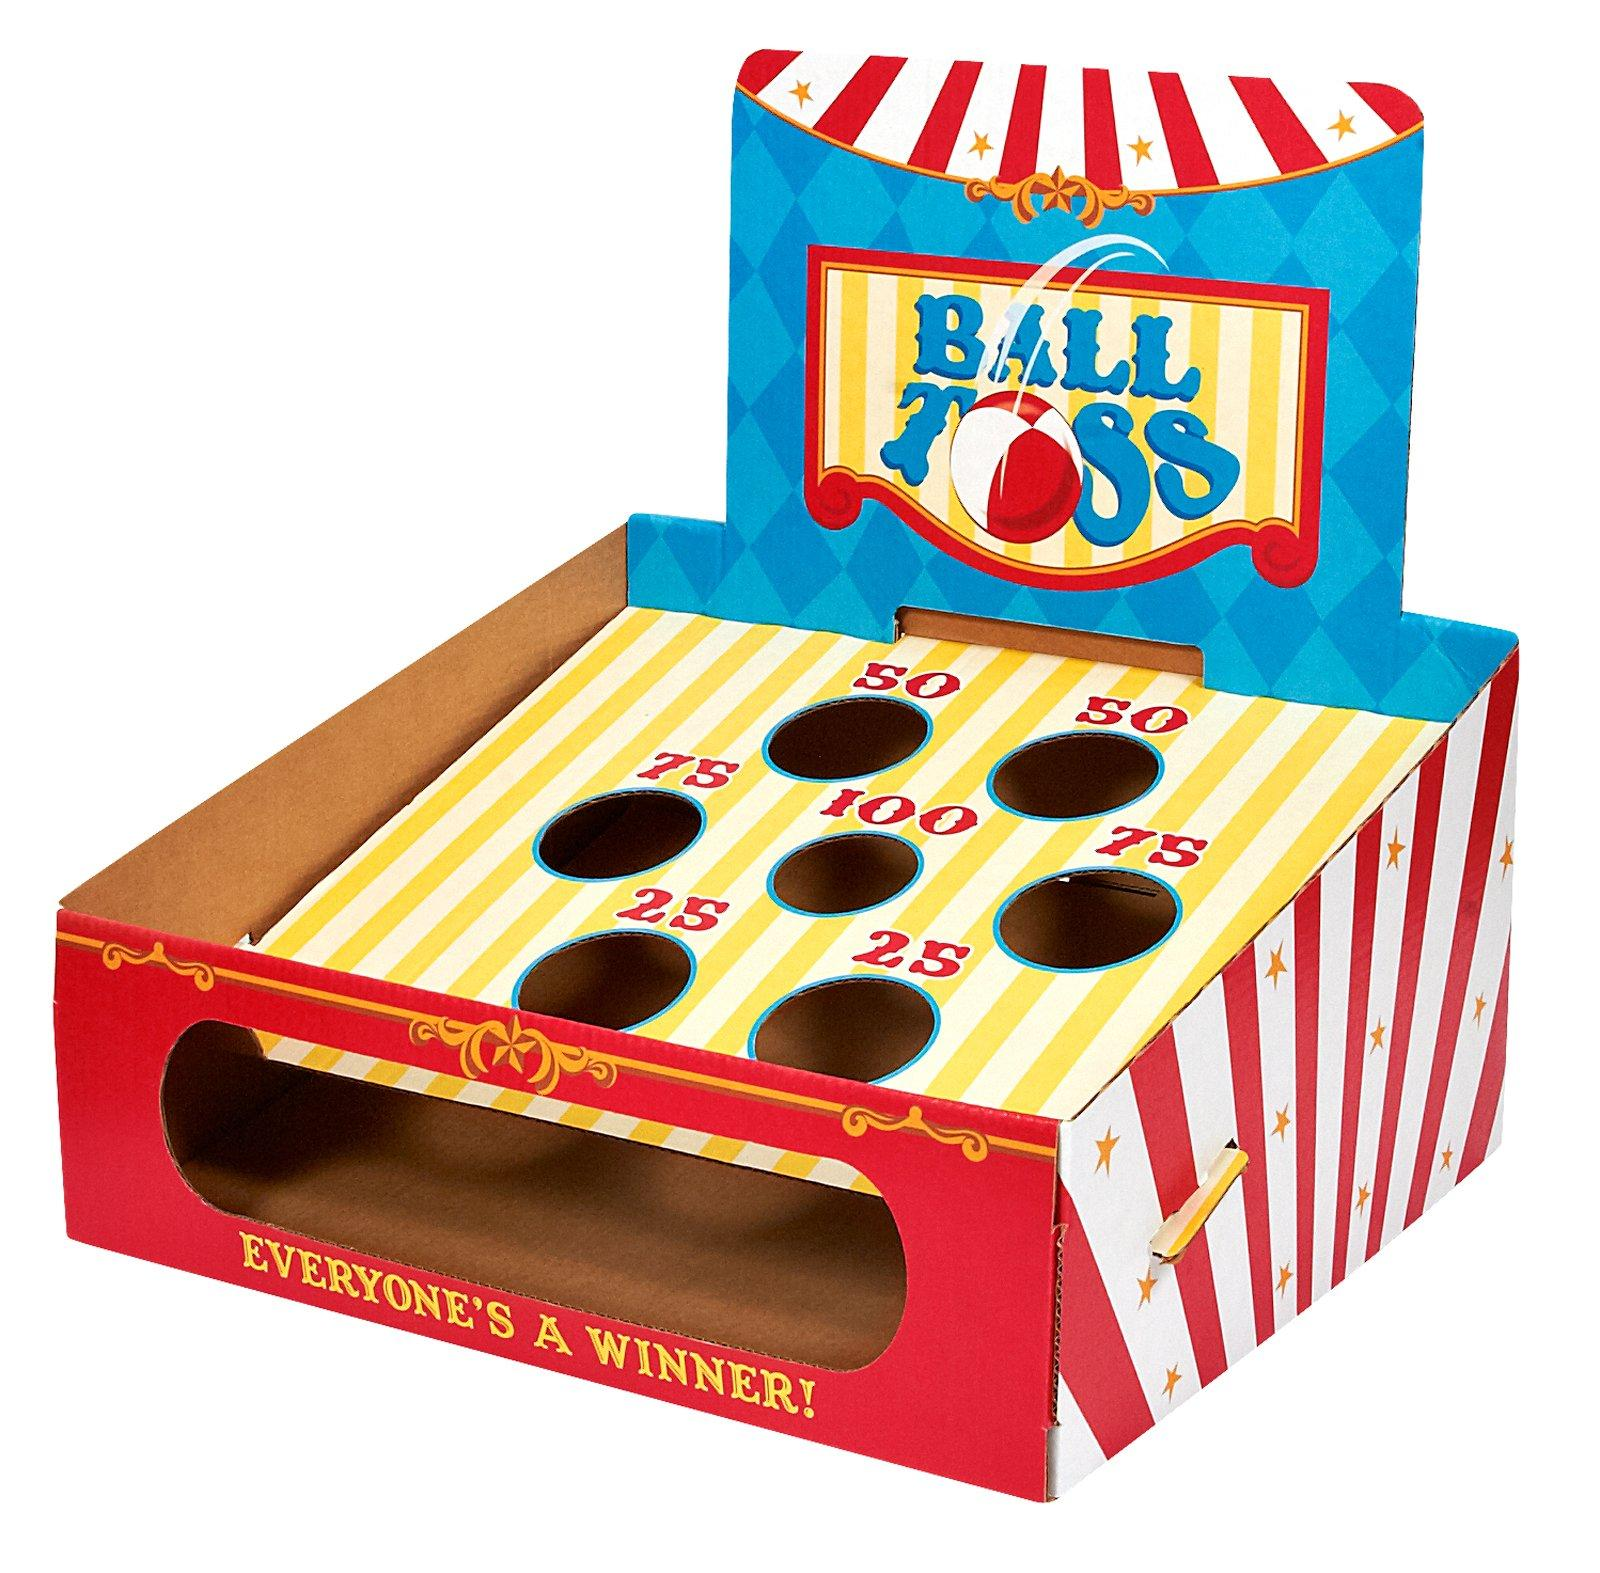 Carnival clipart carnival games. Ball toss game free